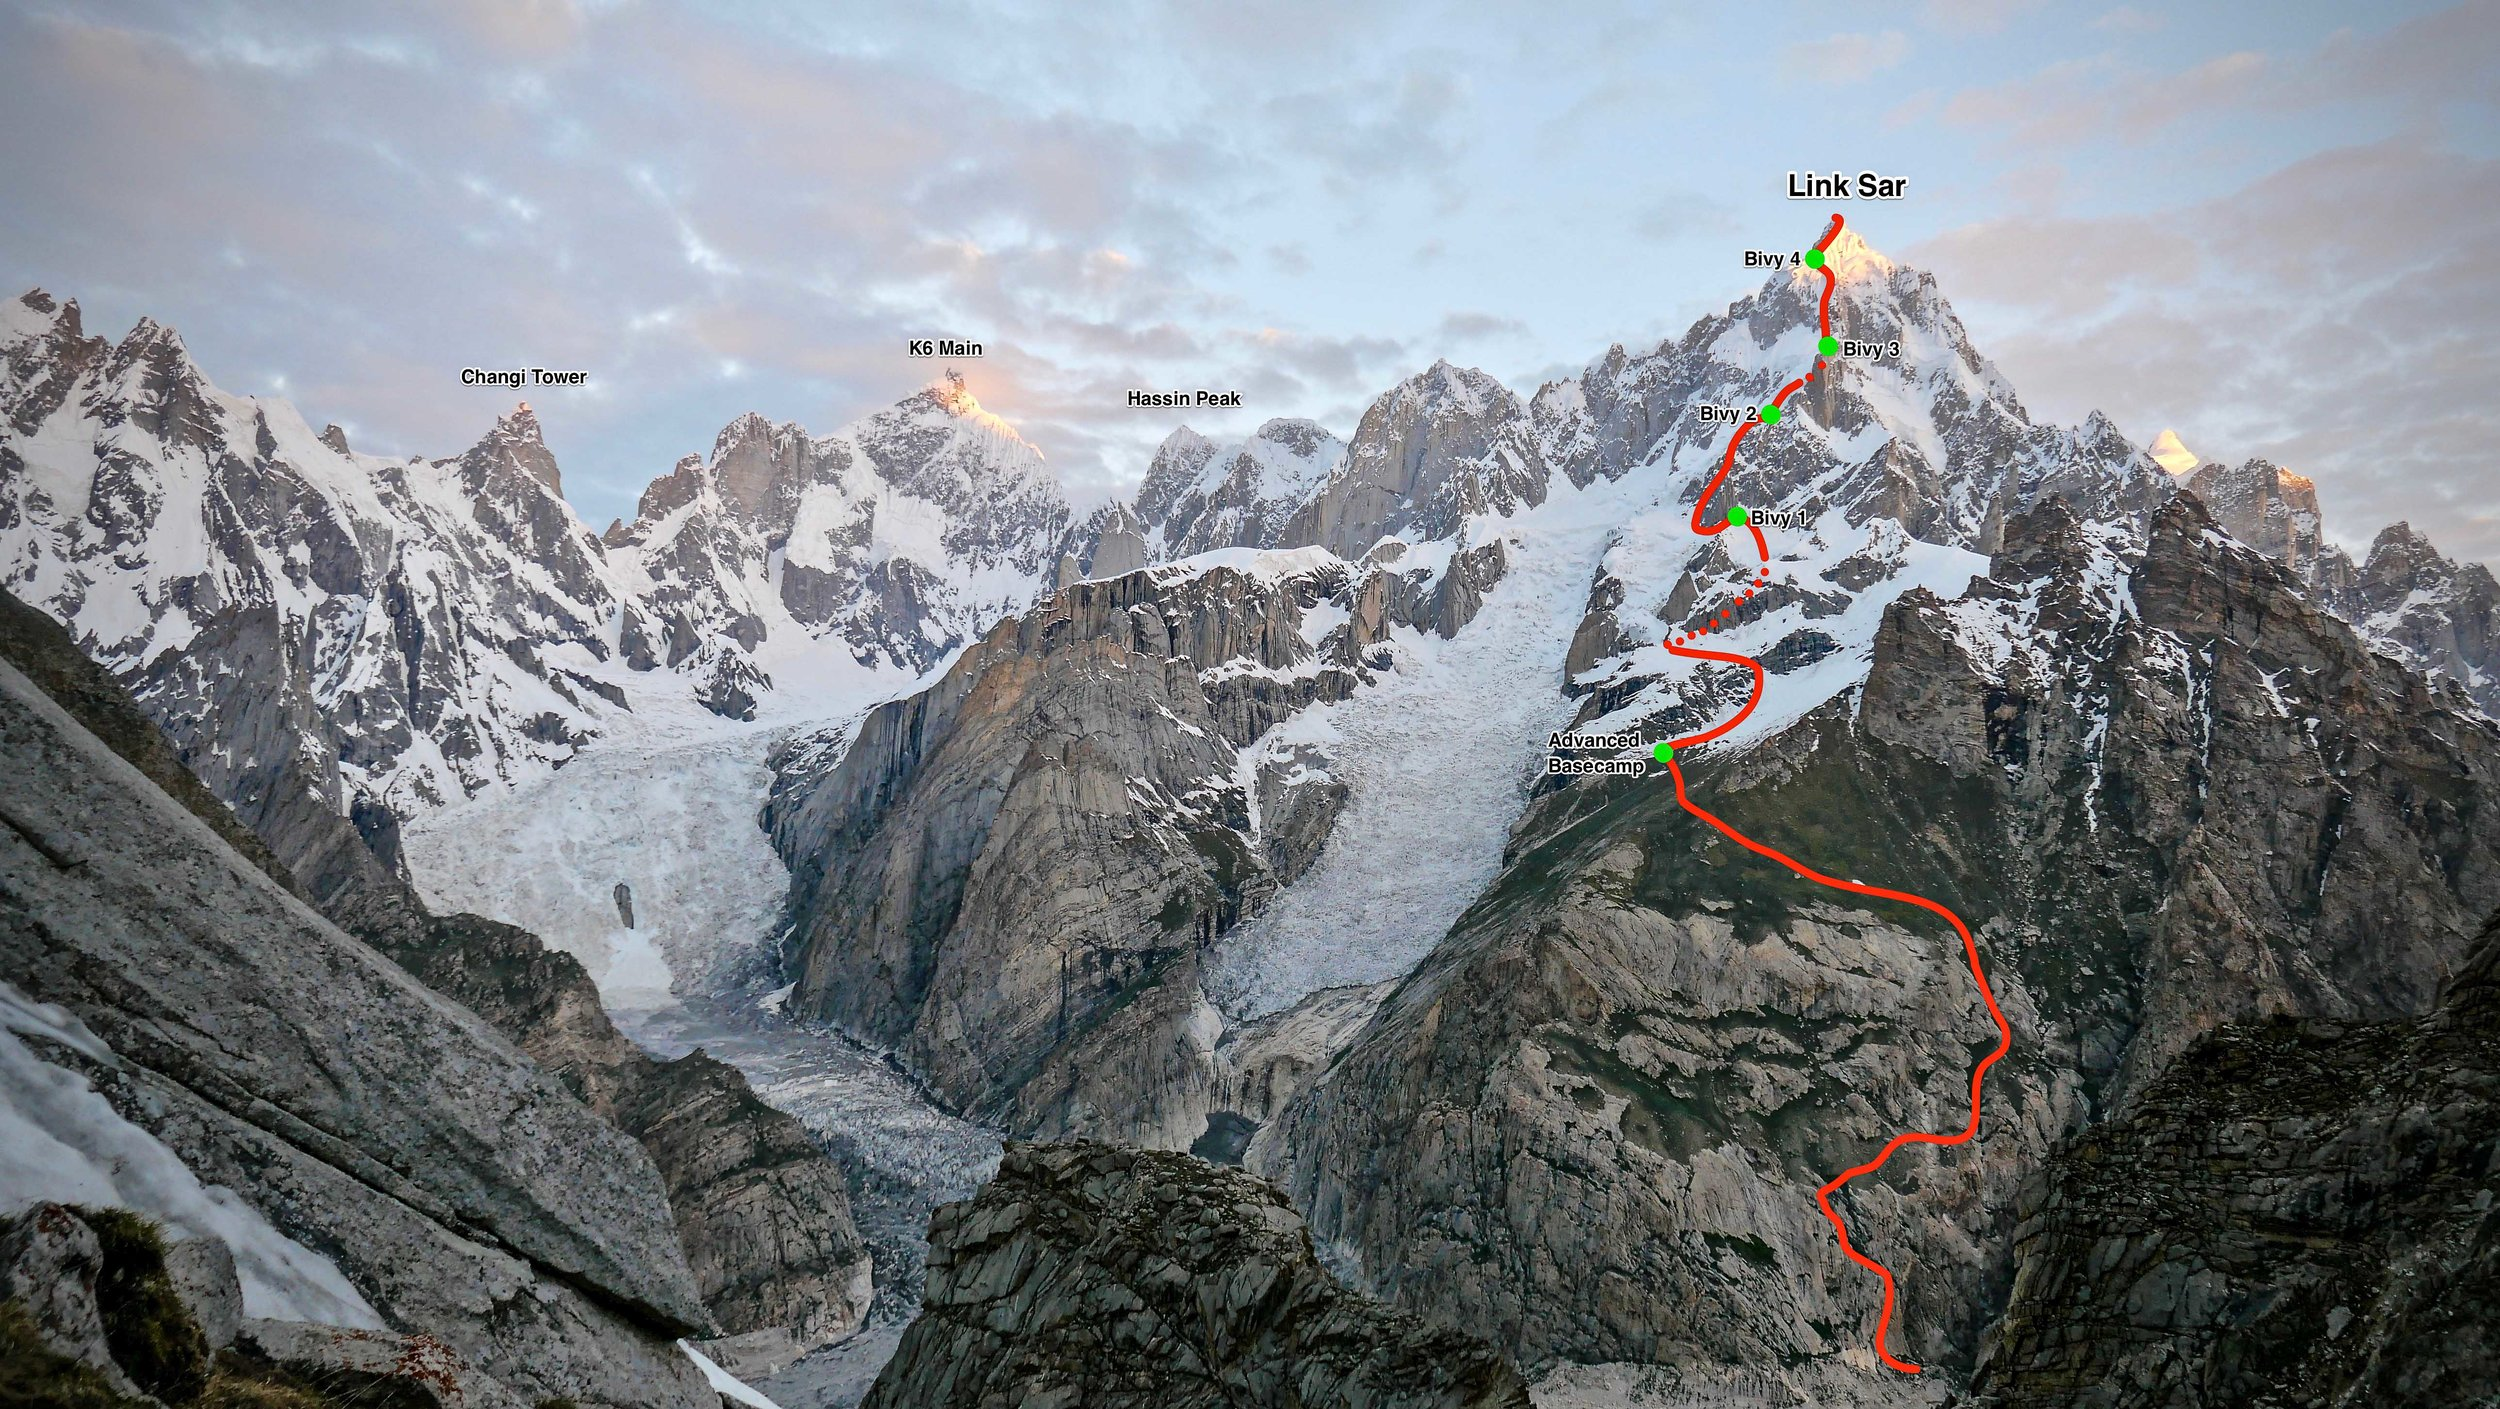 Link Sar (7,041m), showing the line of the first ascent on the southeast face. The team spent several weeks establishing a well-stocked advanced base camp (lowest green dot) and acclimatizing above it. The final push took nine days up and down, including a 36-hour stay at the second bivouac, waiting for a storm to clear. Photo courtesy of Matteo Della Bordella.